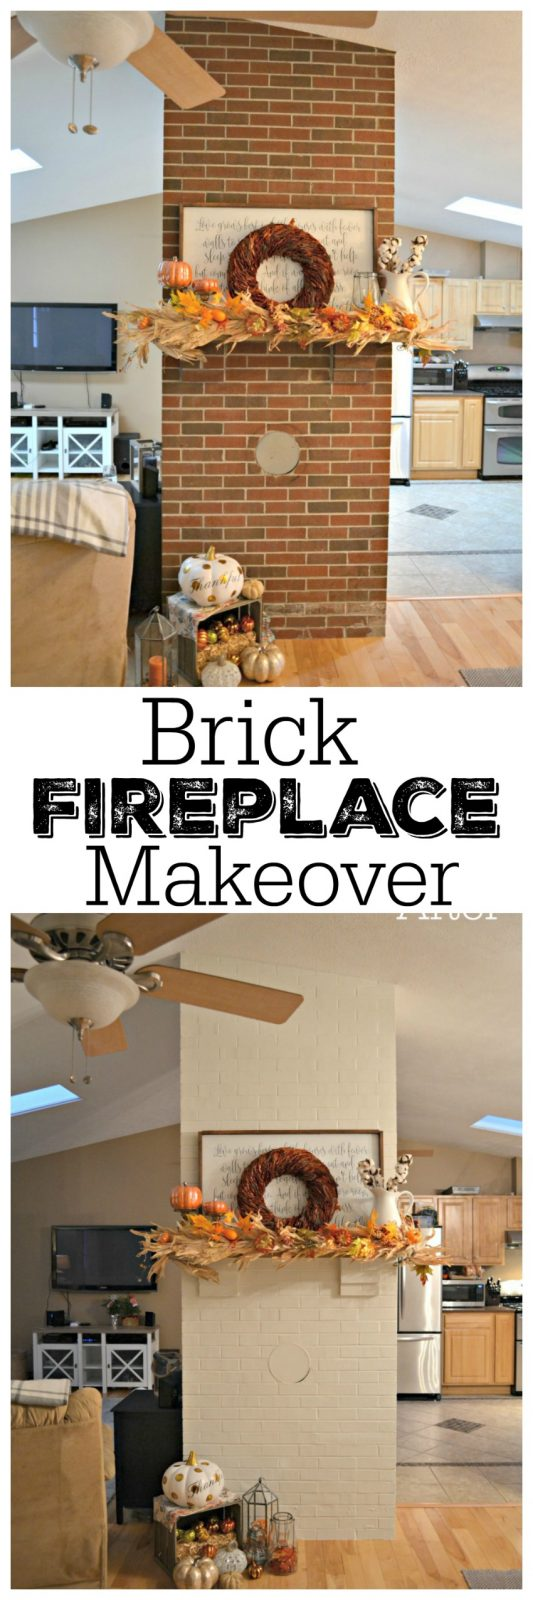 brick fireplace makeover idea from the cards we